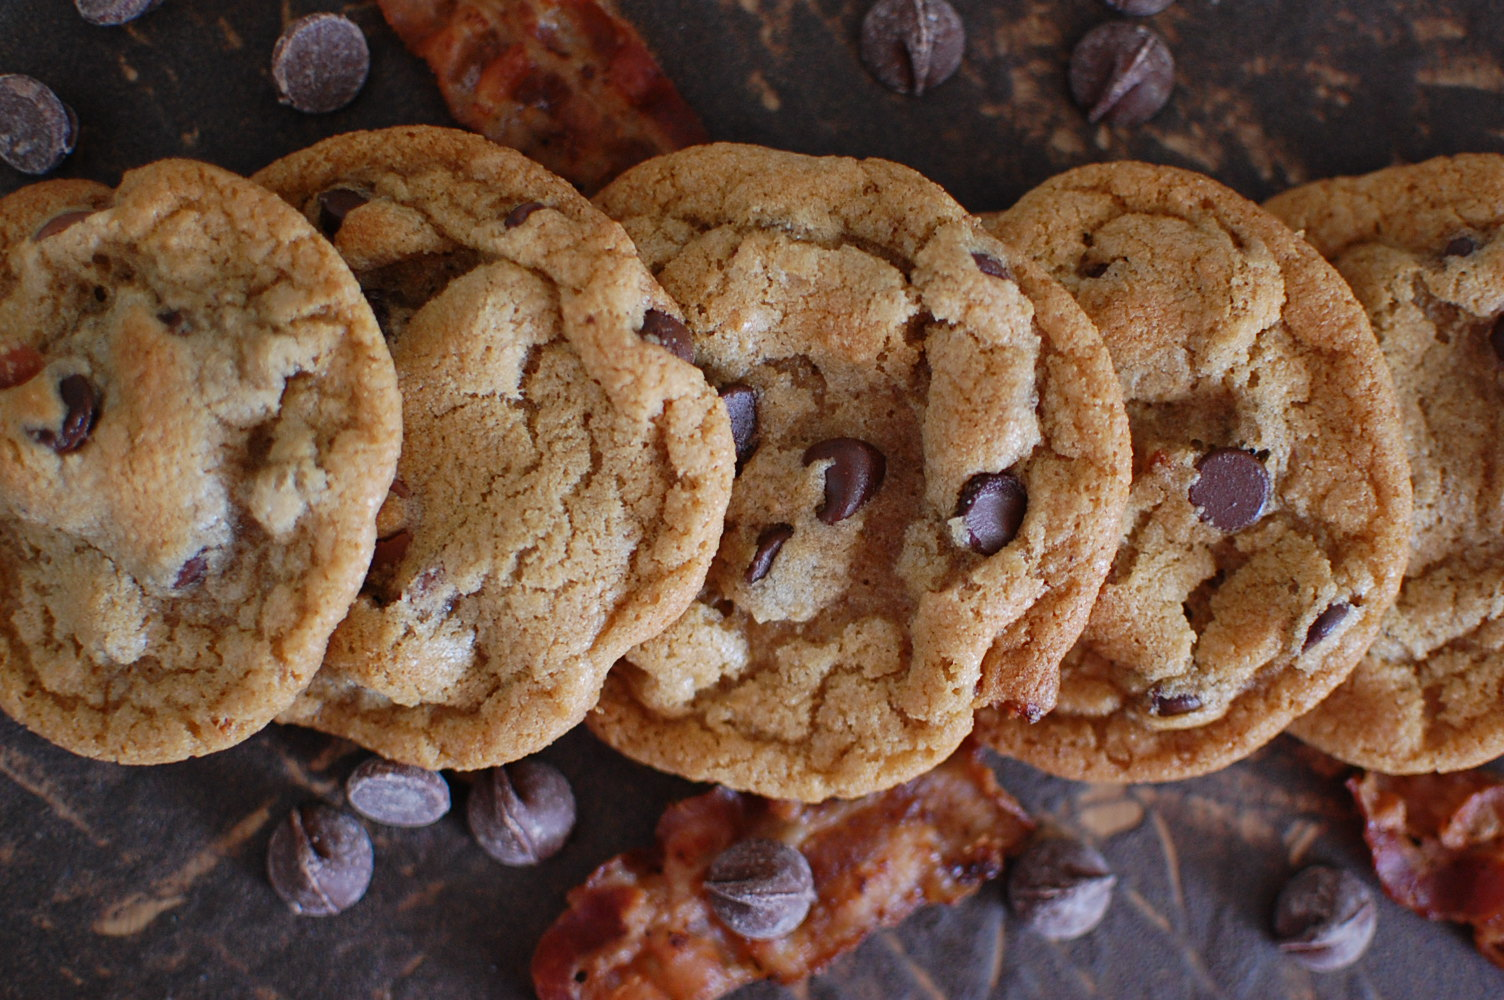 Food, Fun & Life: Bacon Chocolate Chip Cookies